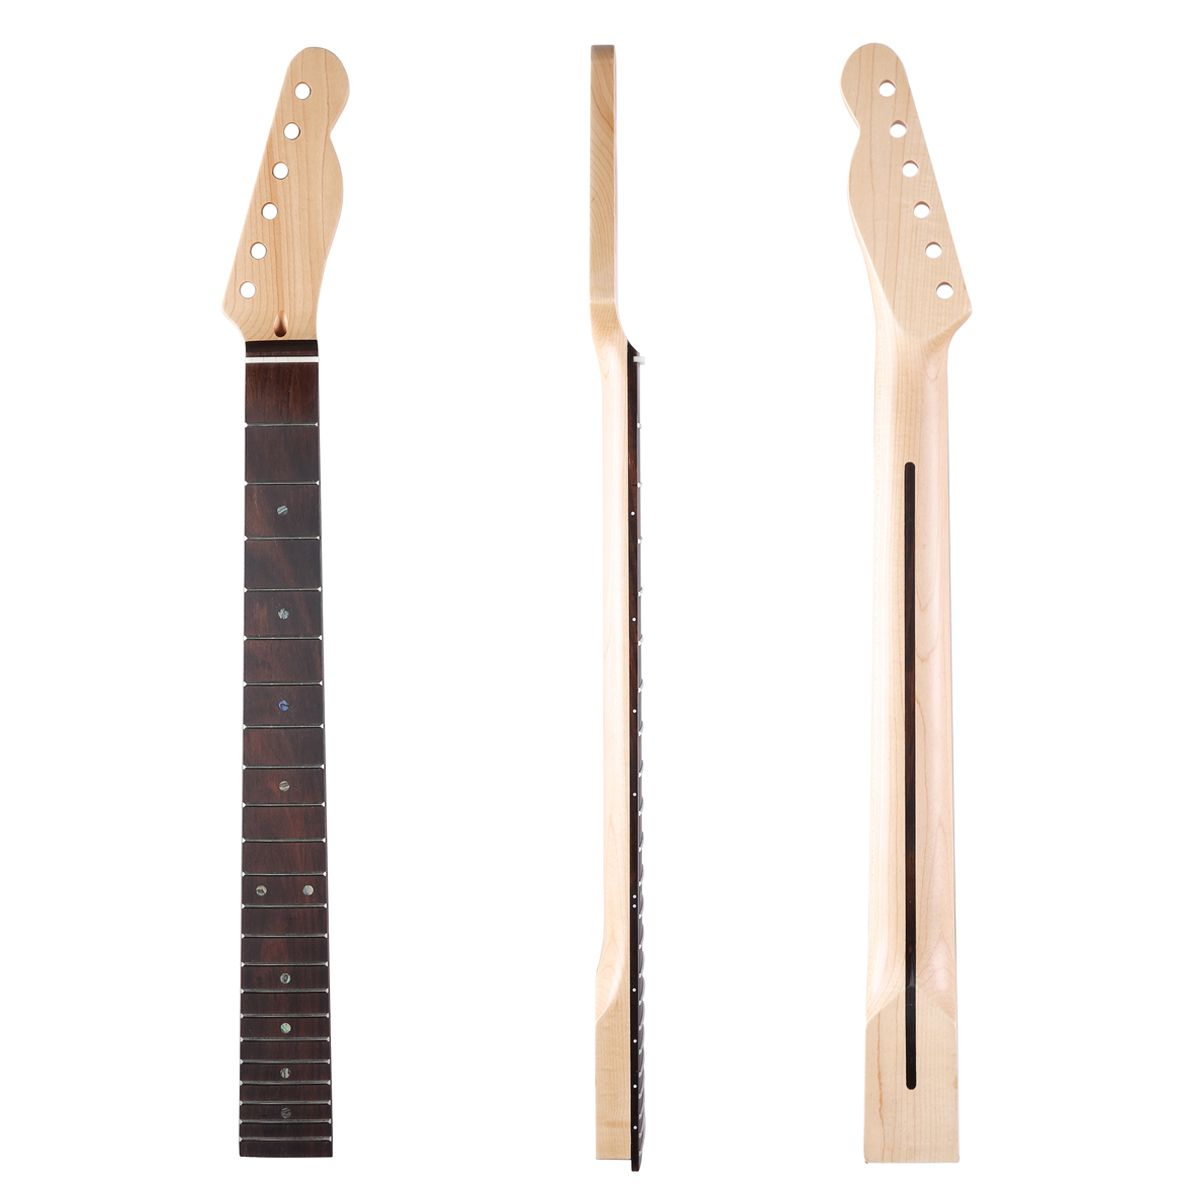 Dopro 22 Fret Canadian Maple Tele Guitar Neck with Rosewood Fingerboard Abalone Inlay and Bone Nut for Telecaster